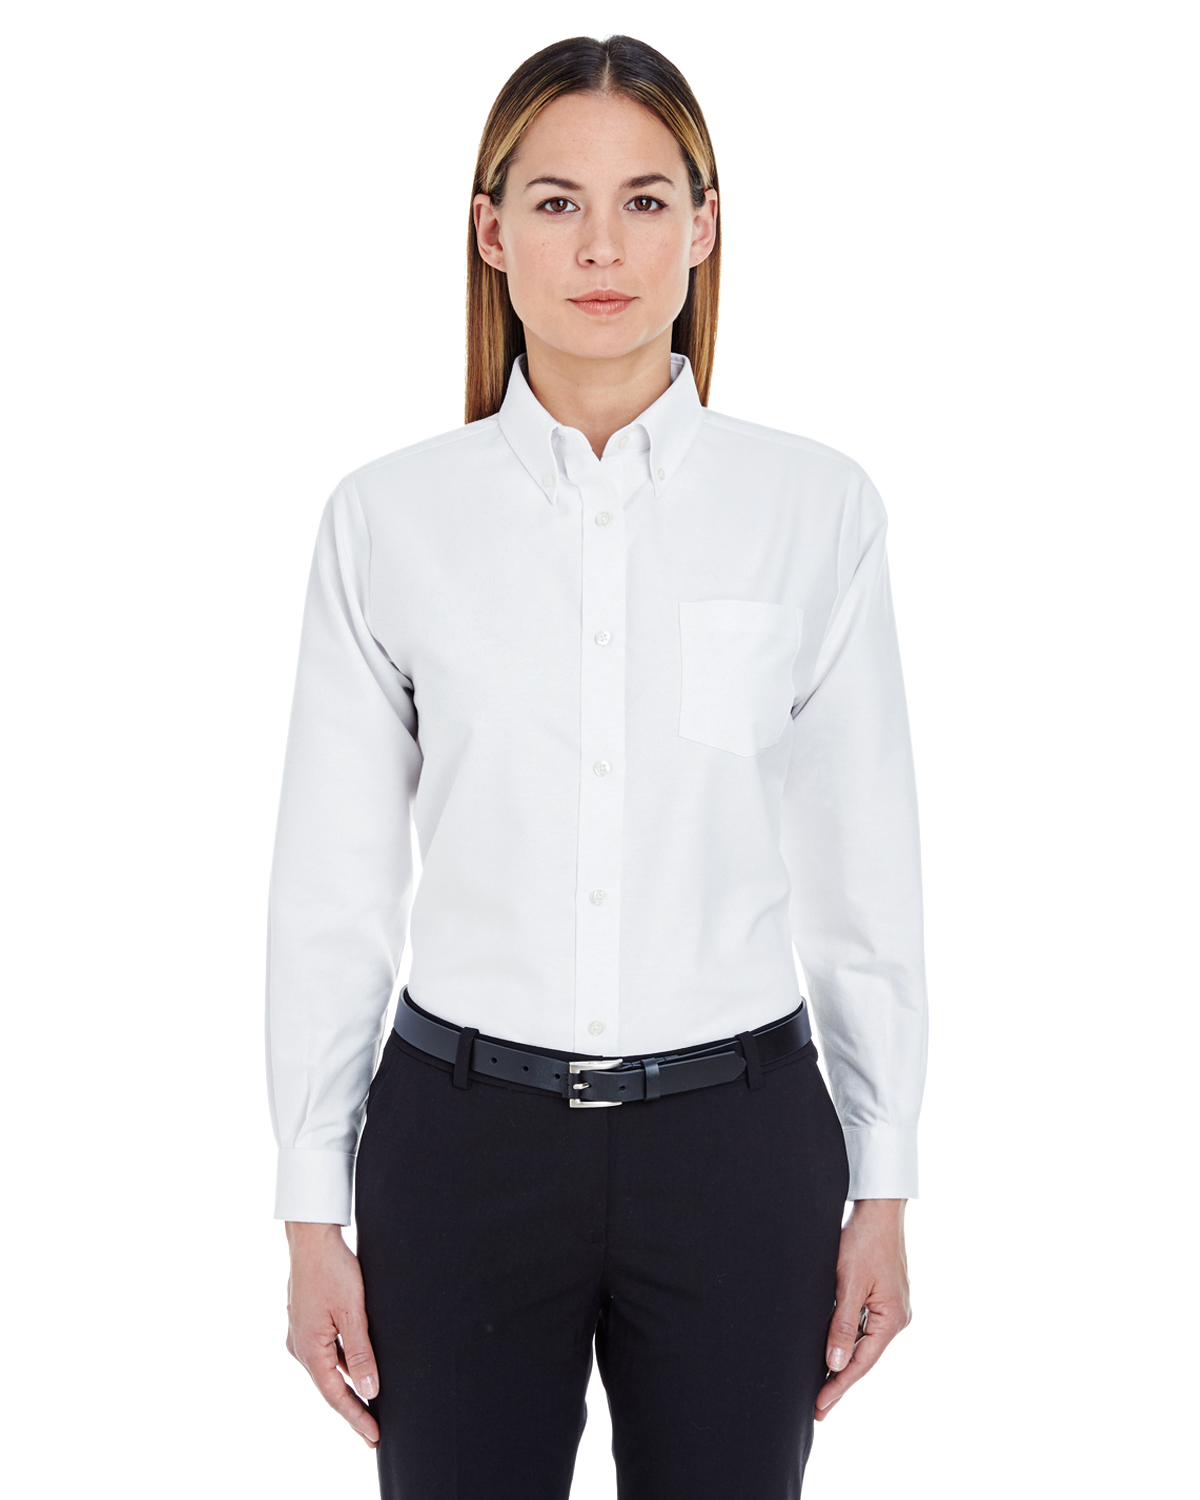 Ultraclub 8990 Wrinkle free shirts for women